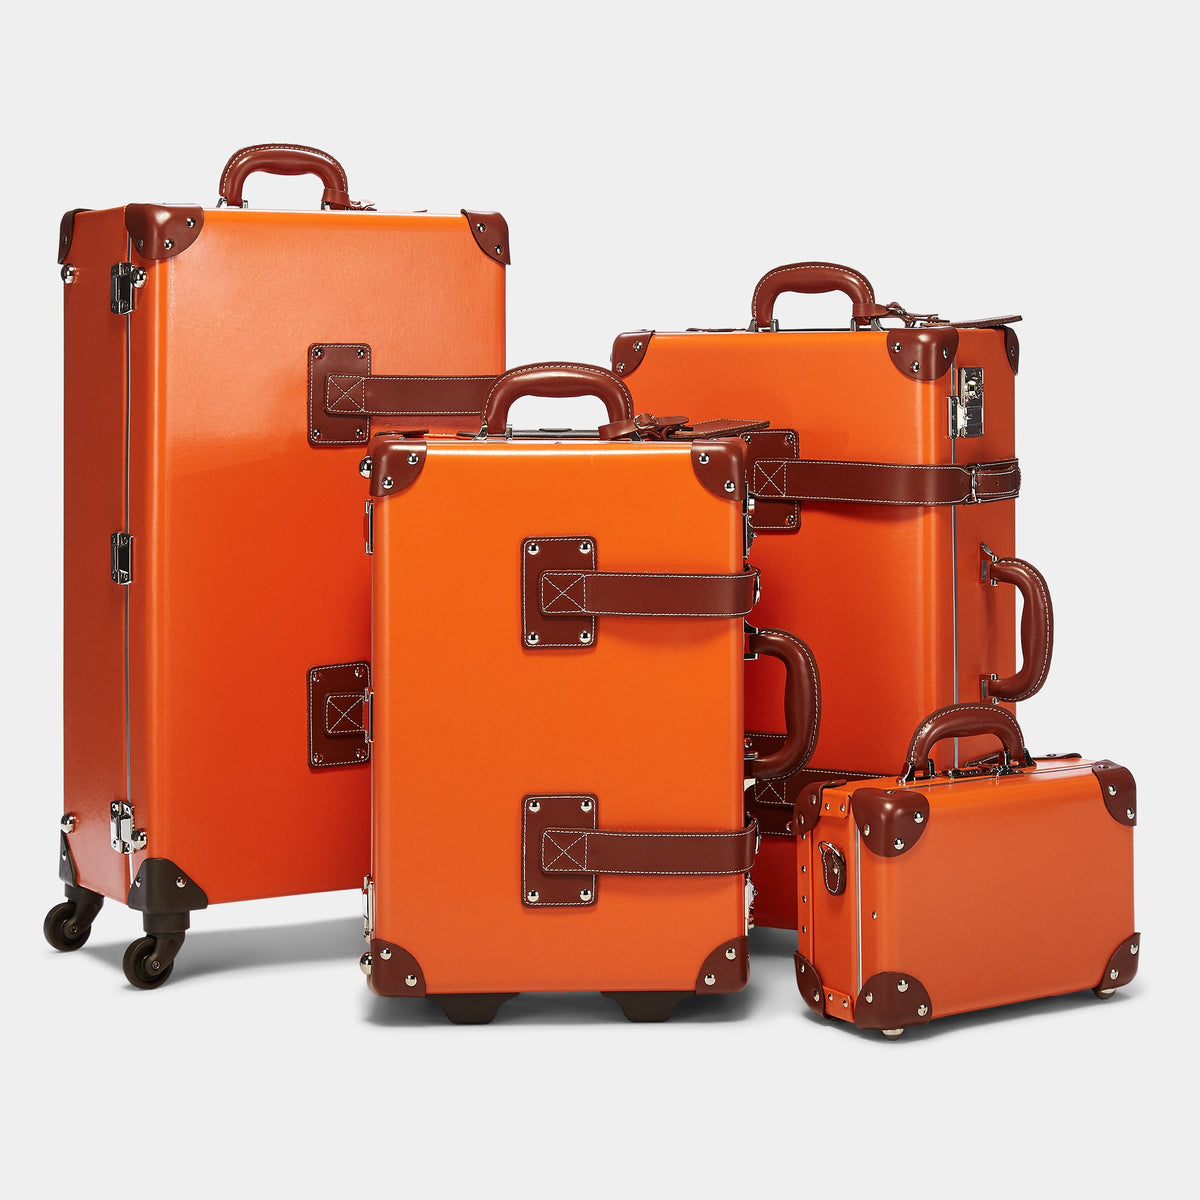 The Anthropologist Carryon in Orange - Vintage Style Leather Case - Alongside matching cases from the Anthropologist Orange collection